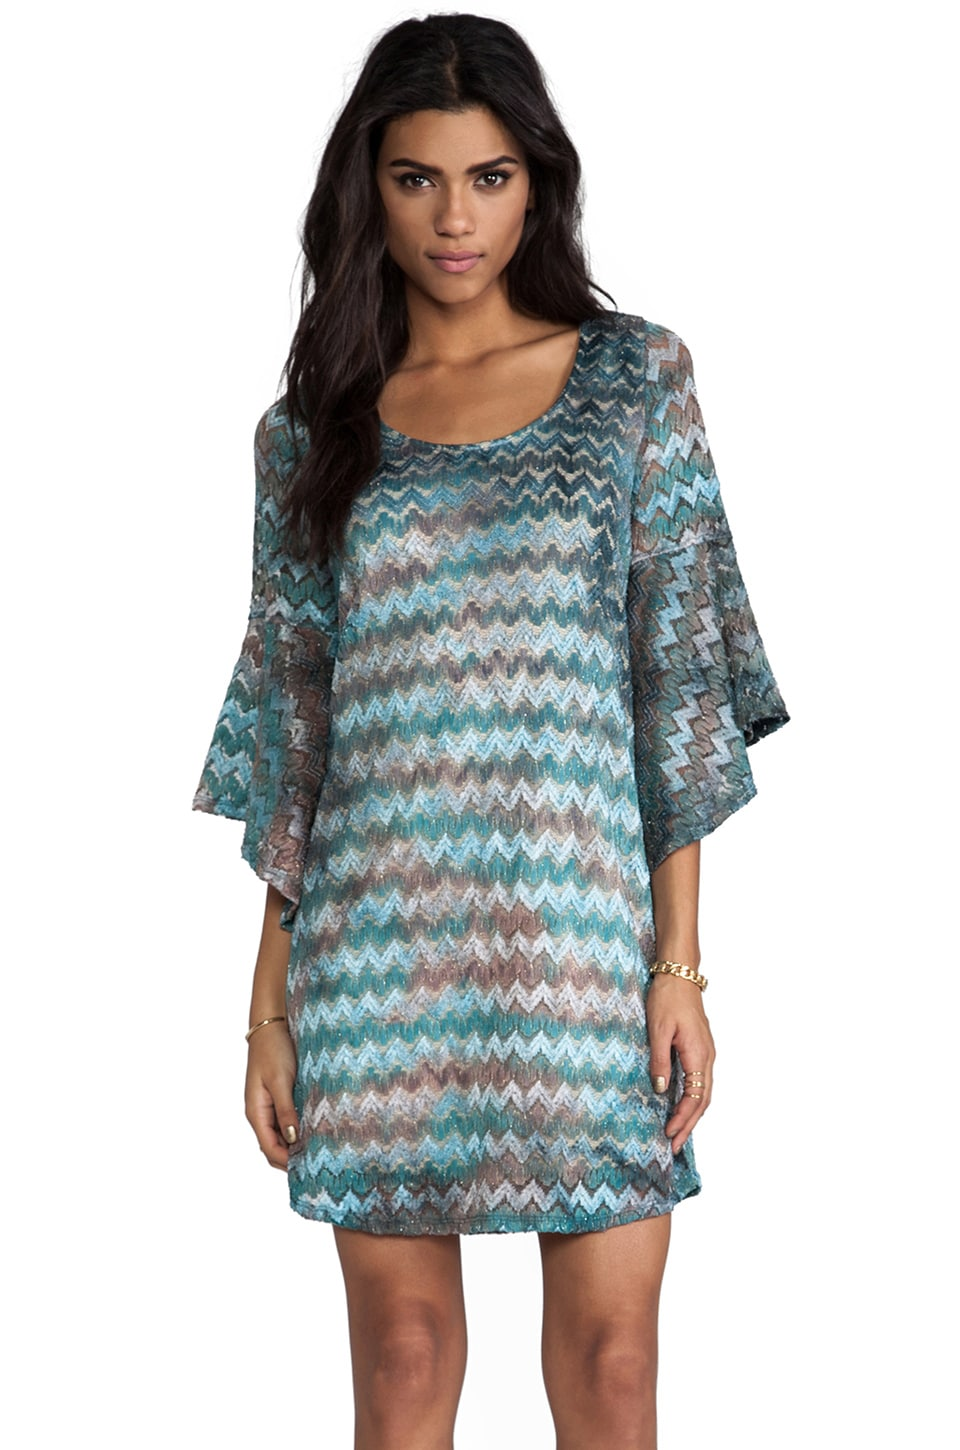 VAVA by Joy Han Sabrina Bell Sleeve Dress in Teal